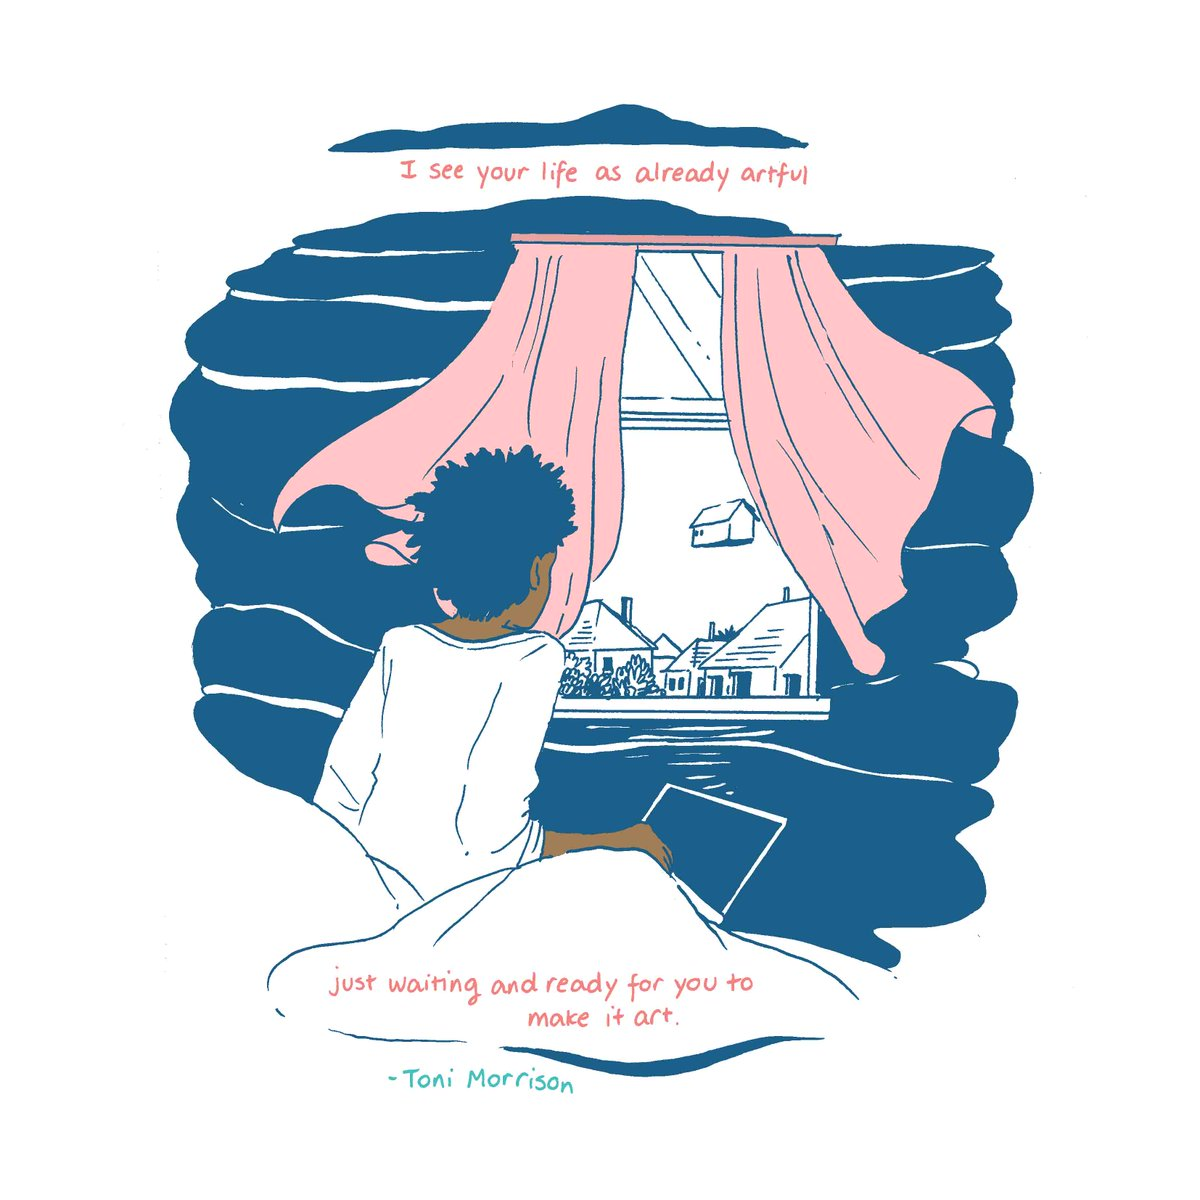 .@tilliewalden breathes life into another #MiniMeditation on #Creativity: &quot;I see your life as already artful, just waiting and ready for you to make art.&quot; Sound words from #ToniMorrison. .  https:// liminal11.com/2018/03/16/min i-meditations-on-creativity-2/ &nbsp; …  .. #fridayfeeling<br>http://pic.twitter.com/xKAam5HqmT